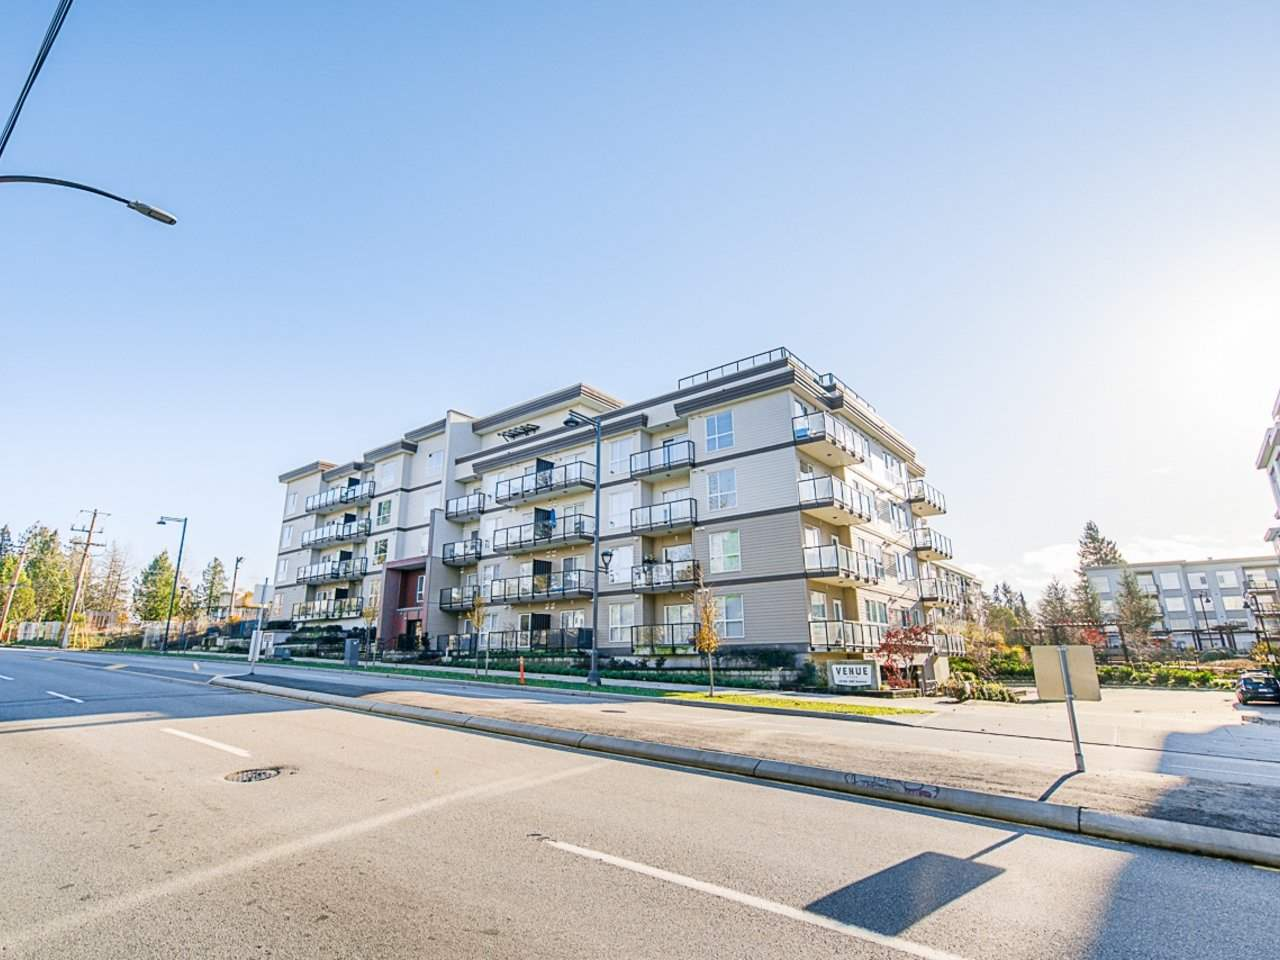 506 13768 108 AVENUE - Whalley Apartment/Condo for sale, 2 Bedrooms (R2521311)